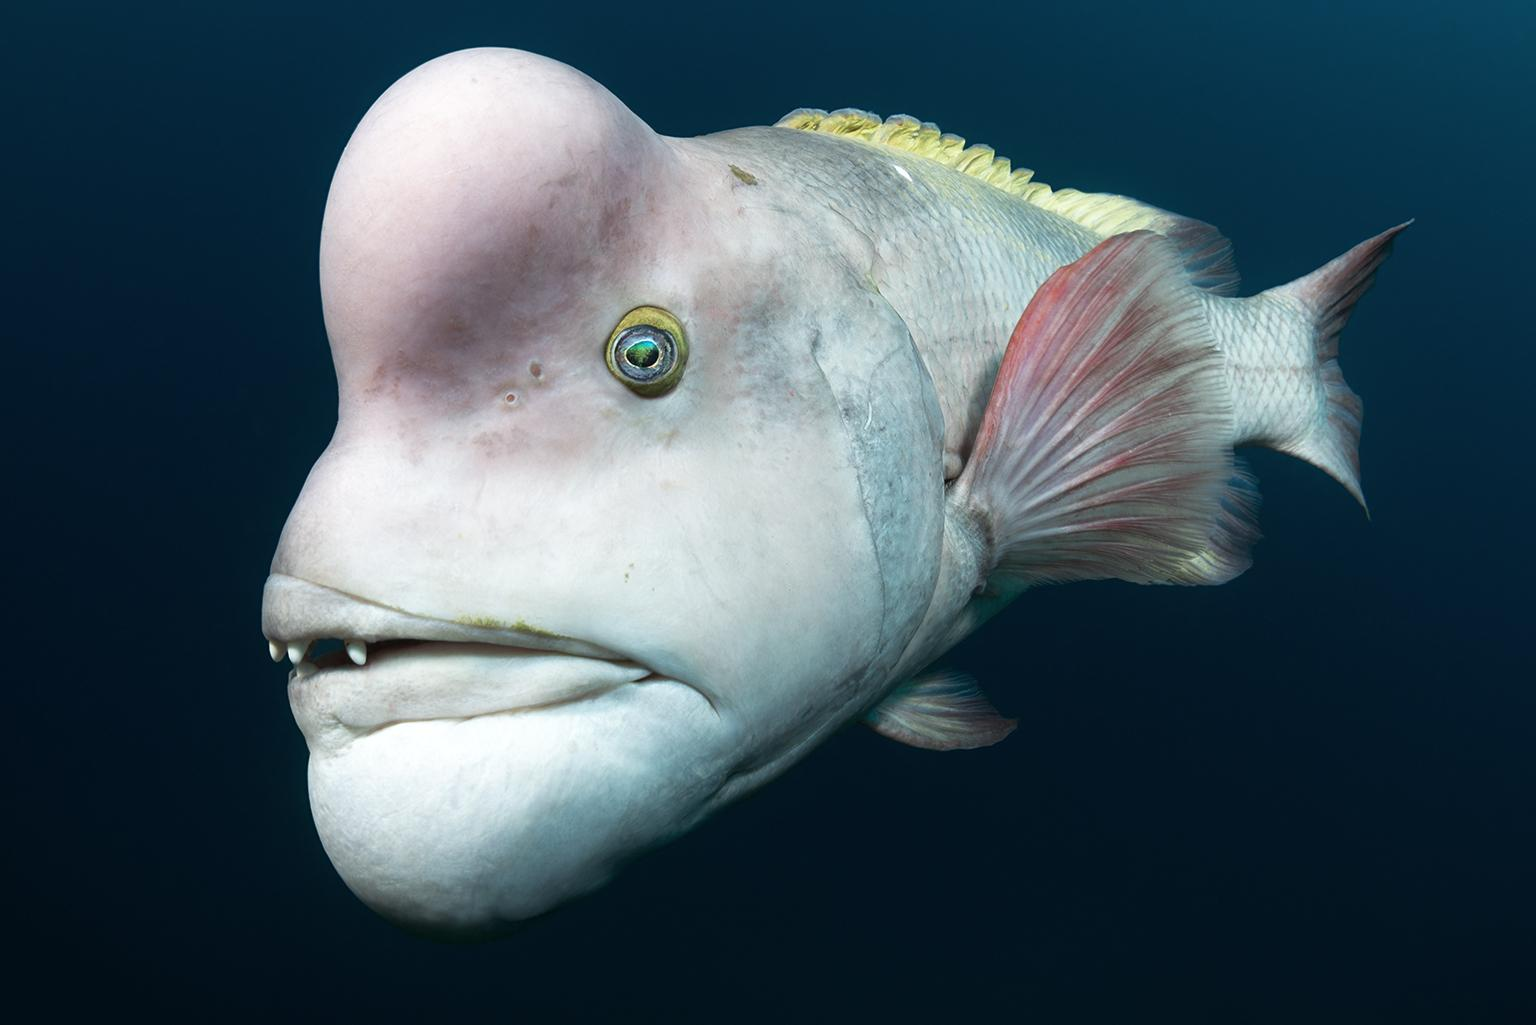 This male Asian sheepshead wrasse is looking for love off of Sado Island, Japan. He is intent on impressing females, and fending off rivals, which he will head-butt and bite. (© Tony Wu, United States of America)